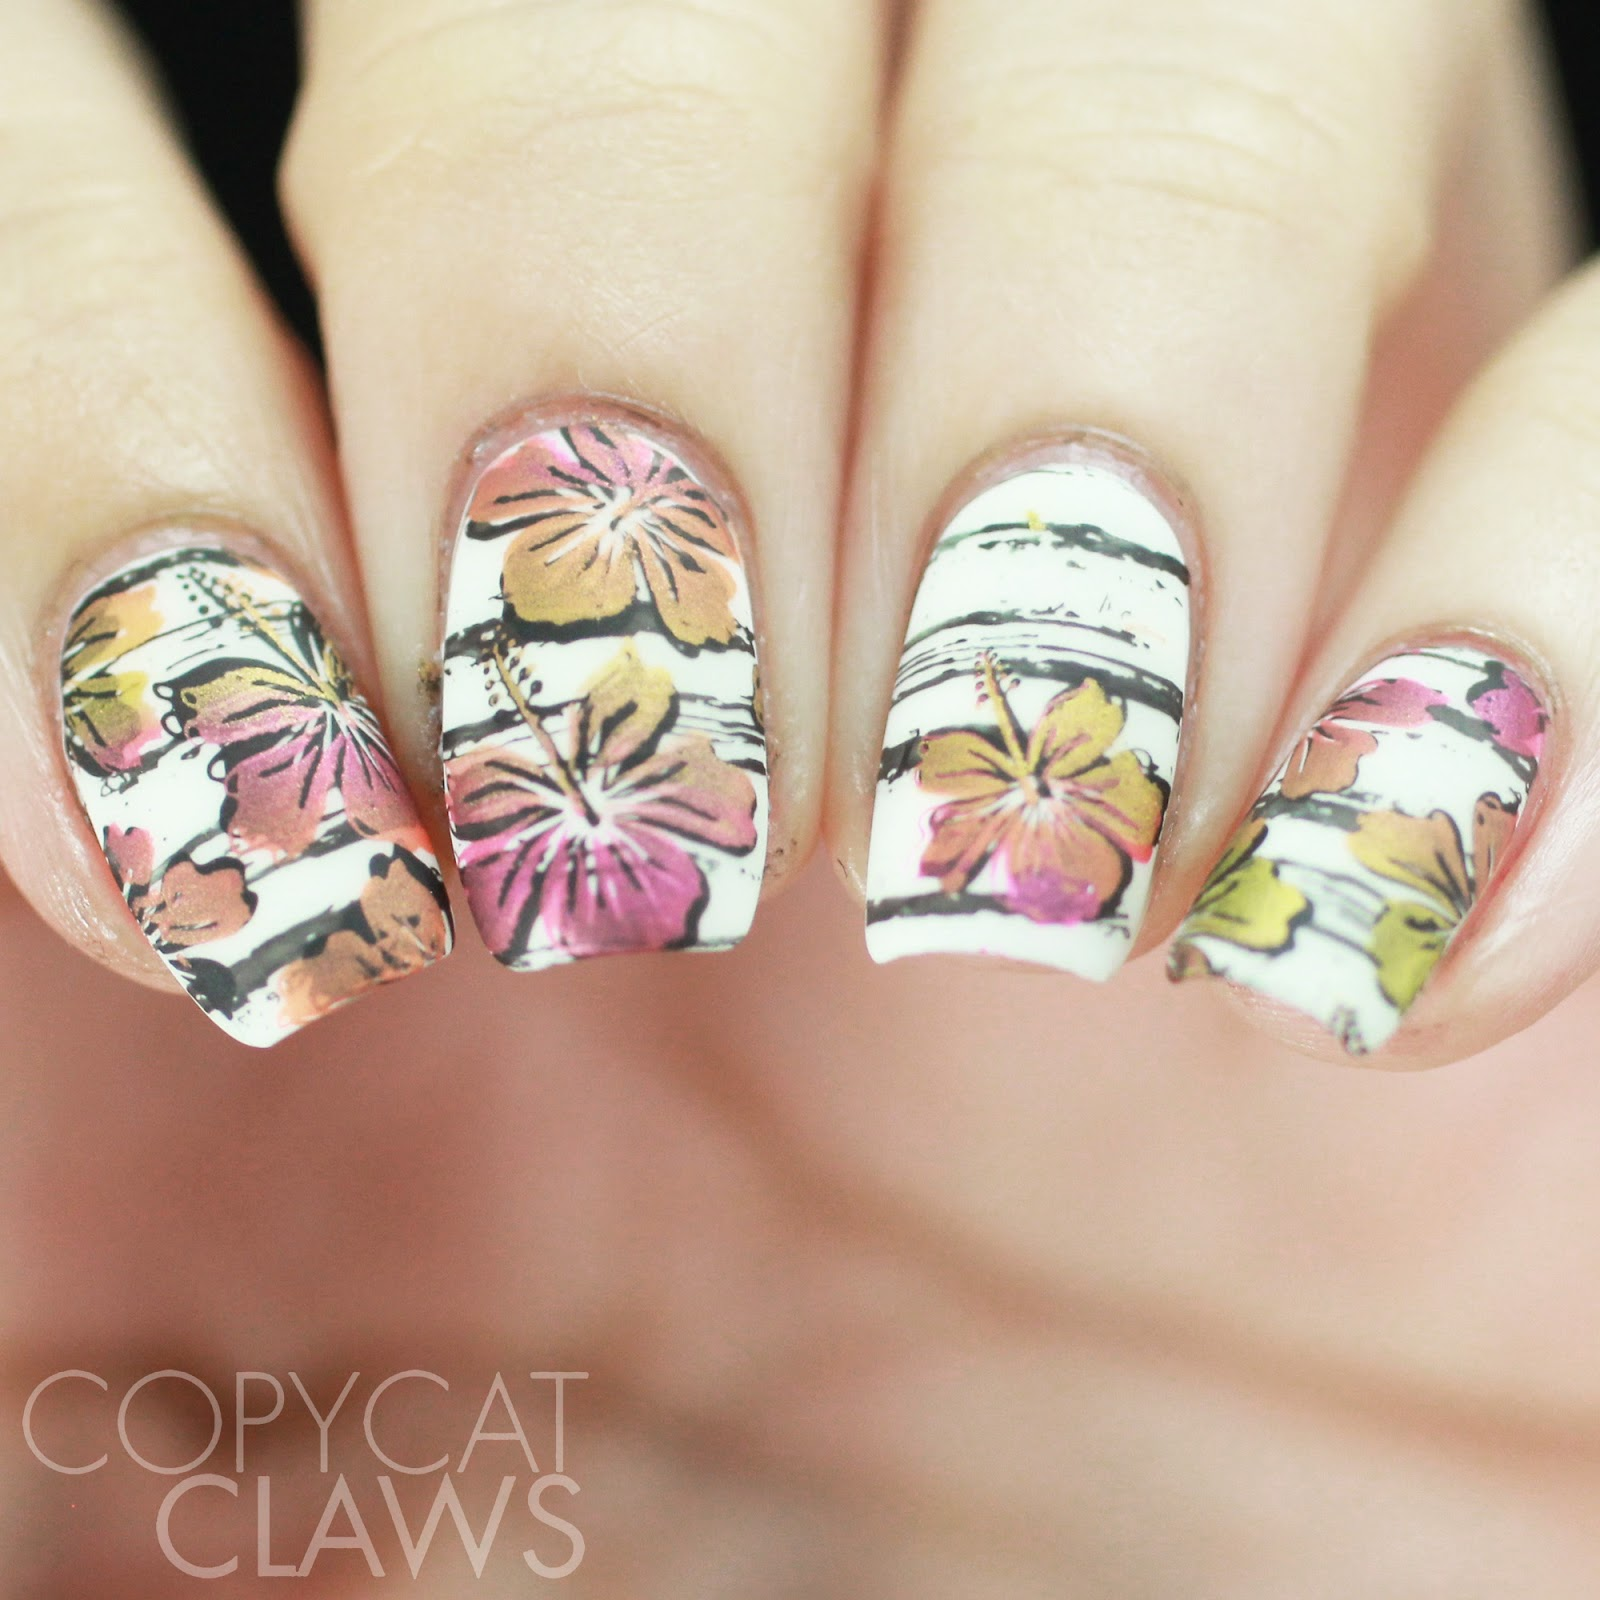 Copycat claws the digit al dozen does tropical hibiscus nails to start i used my favourite white kbshimmer eyes white open then i stamped the distressed lines with lina nail art supplies make your mark 02 and hit izmirmasajfo